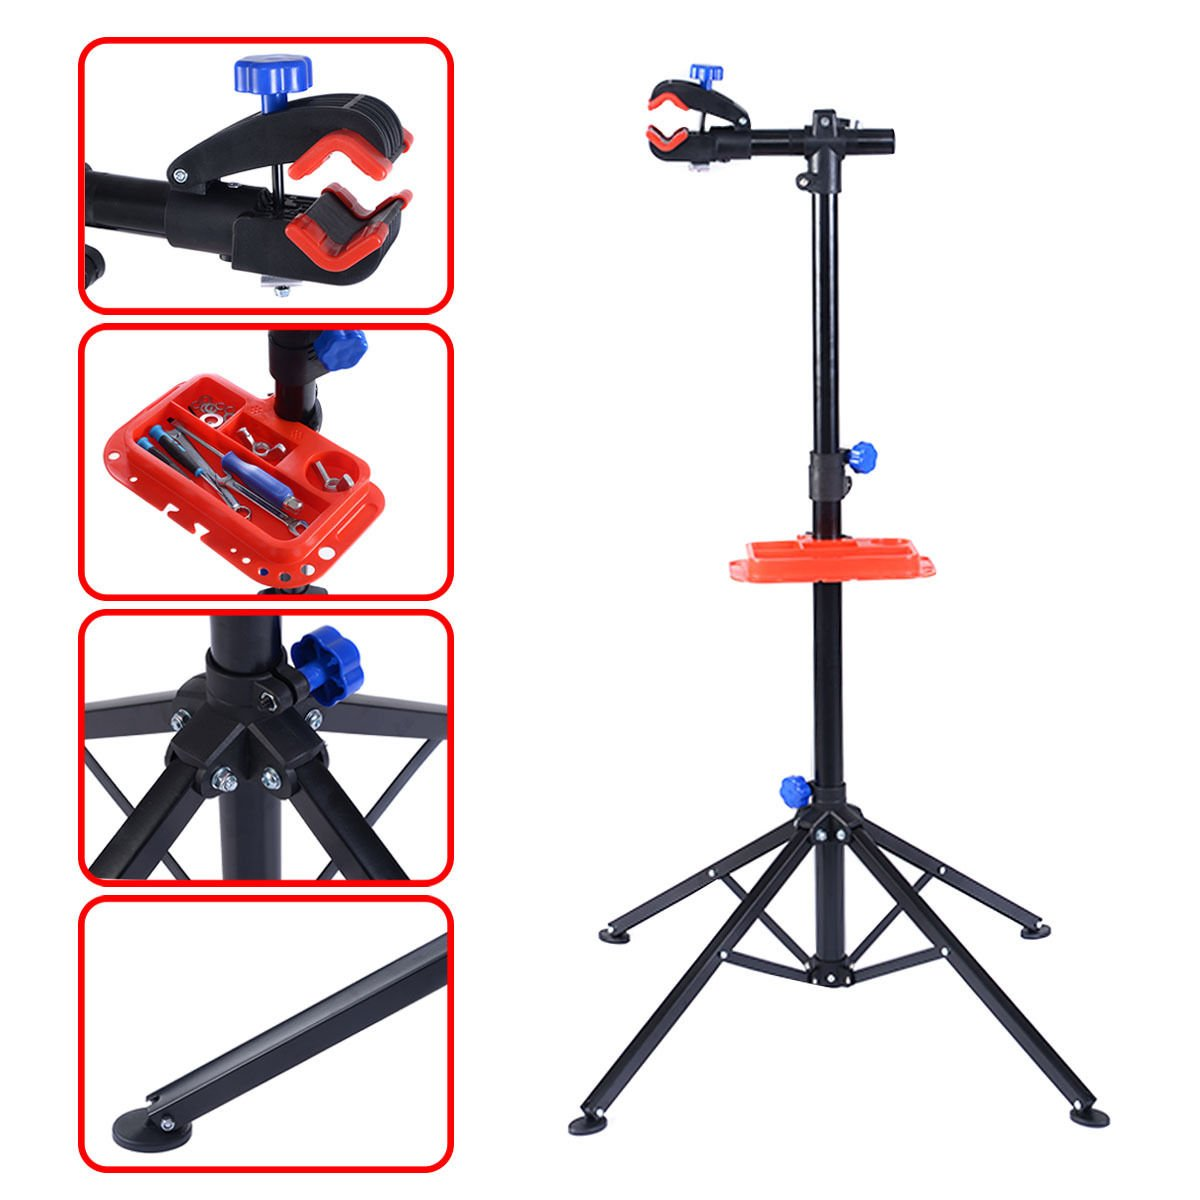 Pro Bike Adjustable 41'' to 75'' Cycle Bicycle Rack Repair Stand w/Tool Tray Red